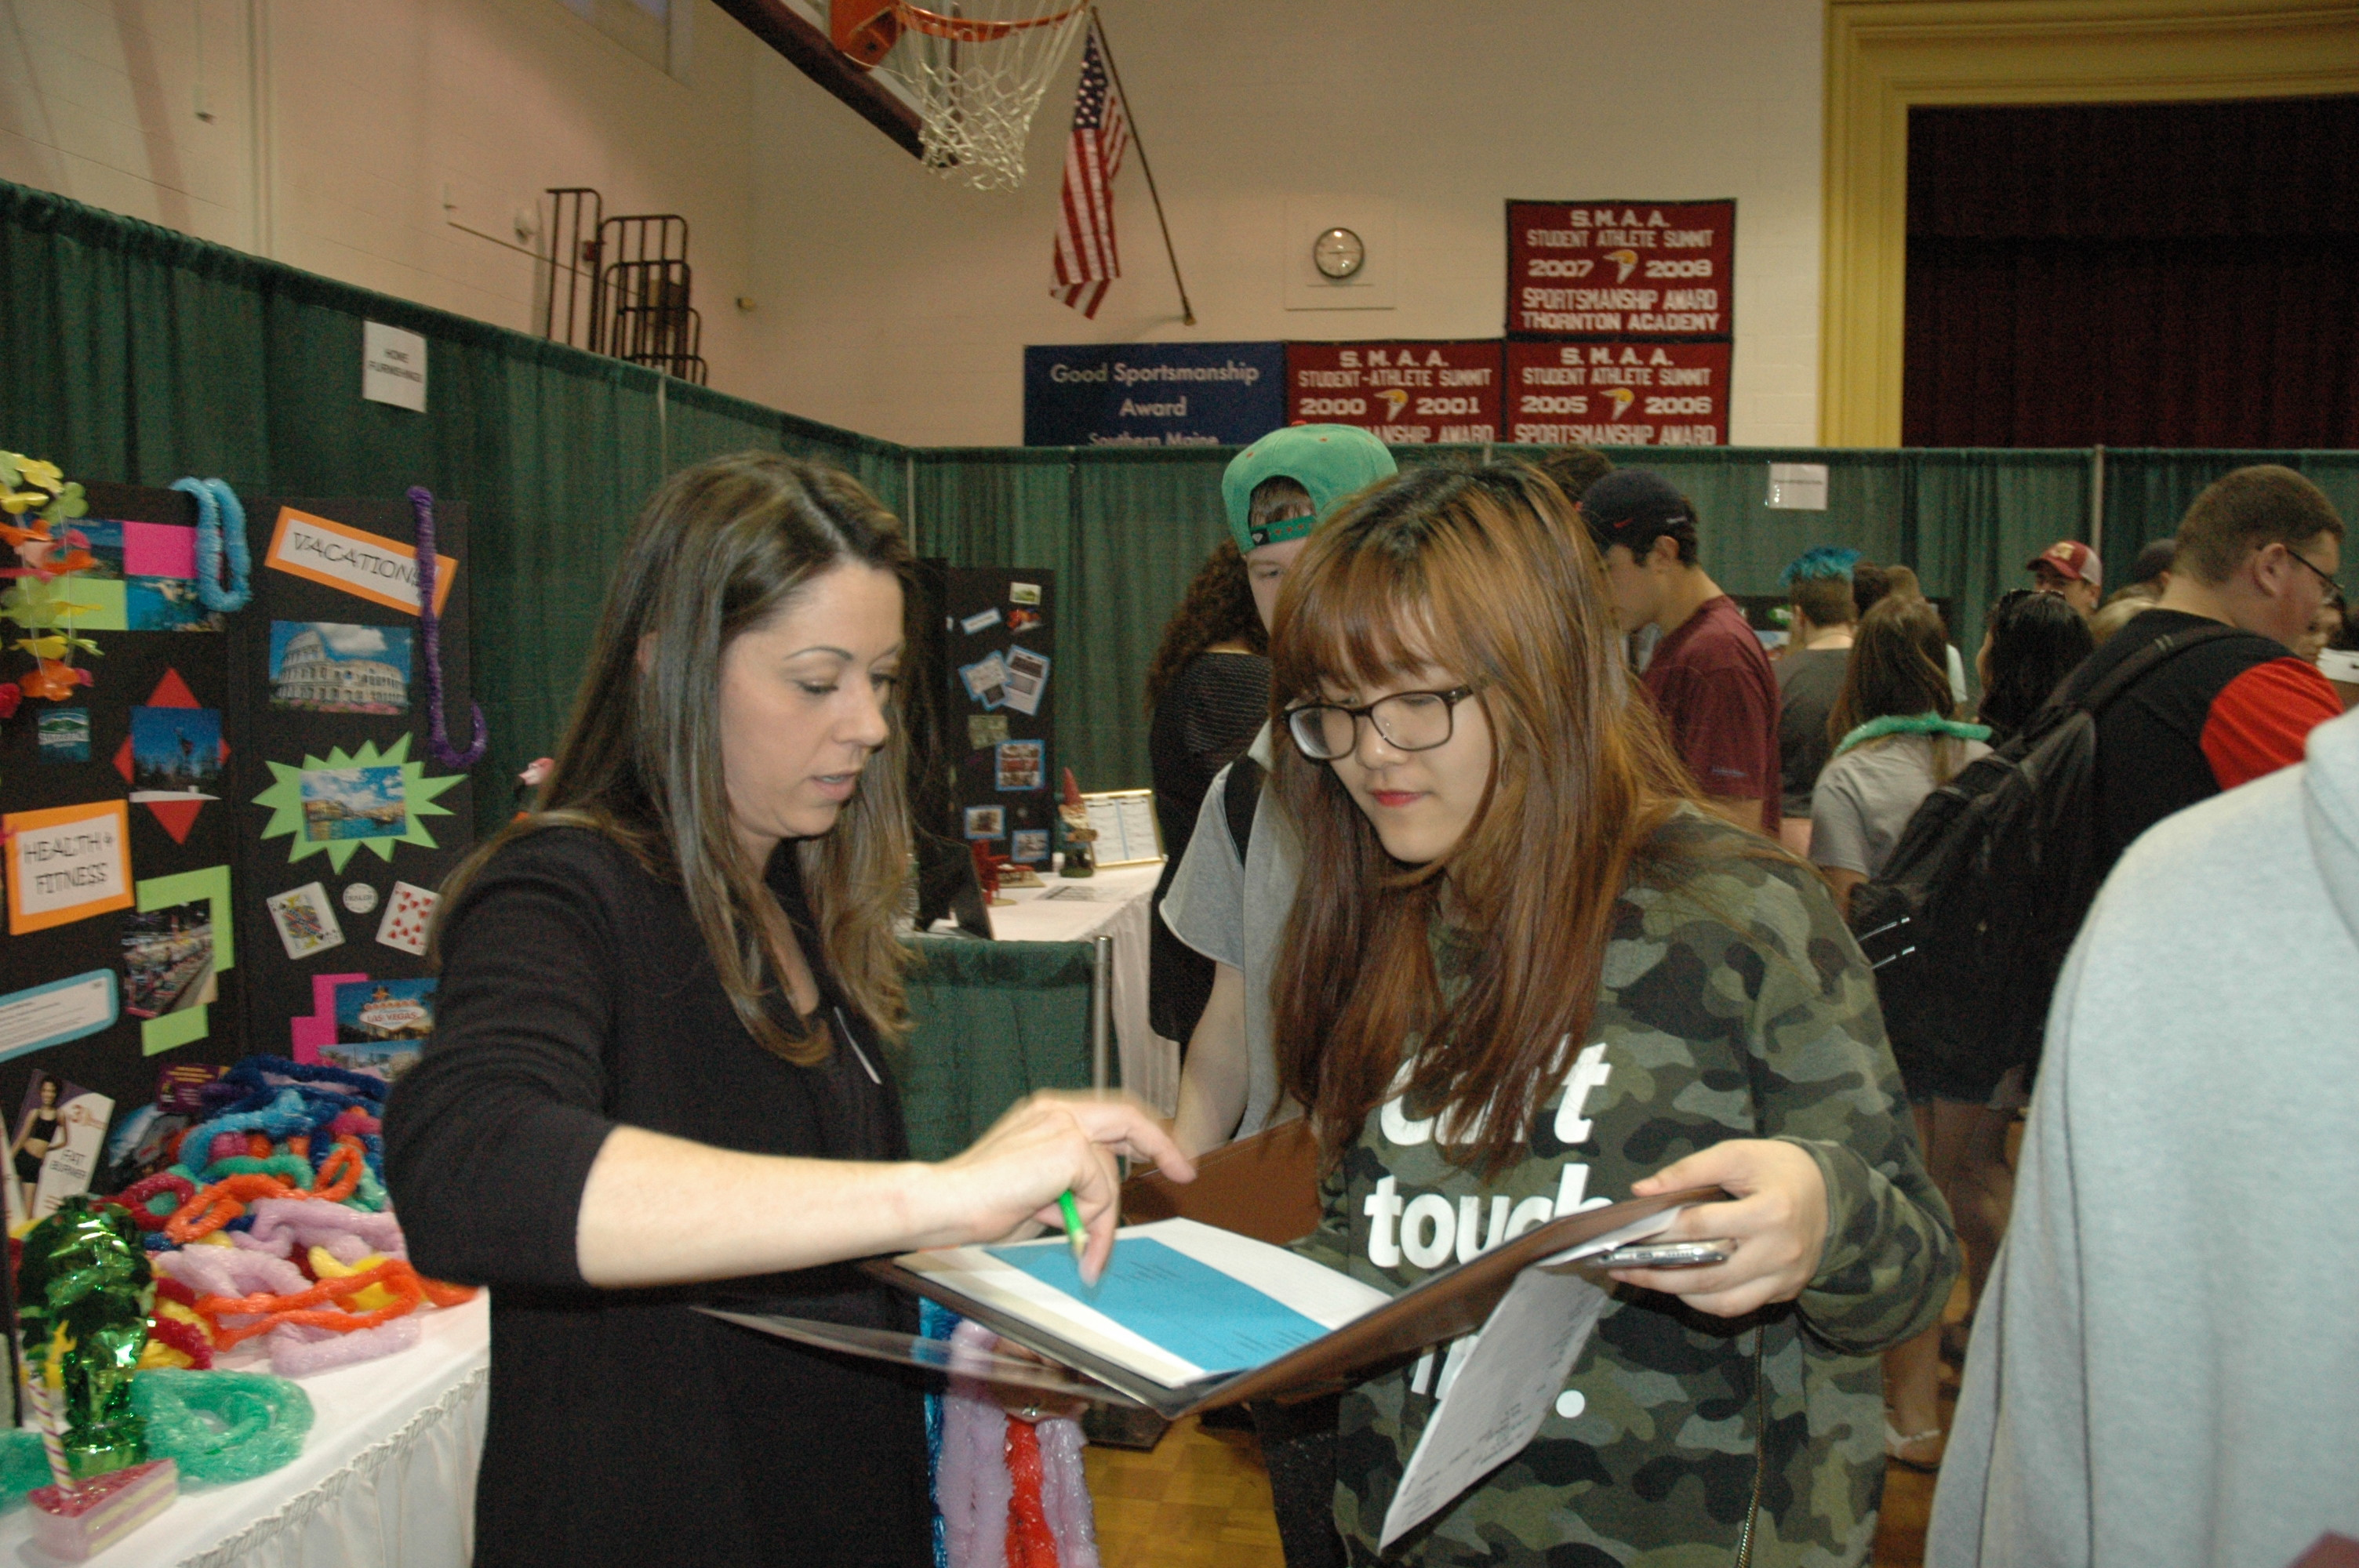 Shari Smith, payment services manager with PeoplesChoice Credit Union, talks to Thornton Academy student Ina Vu at a Financial Fitness Fair at the school on Wednesday. LIZ GOTTHELF/Journal Tribune